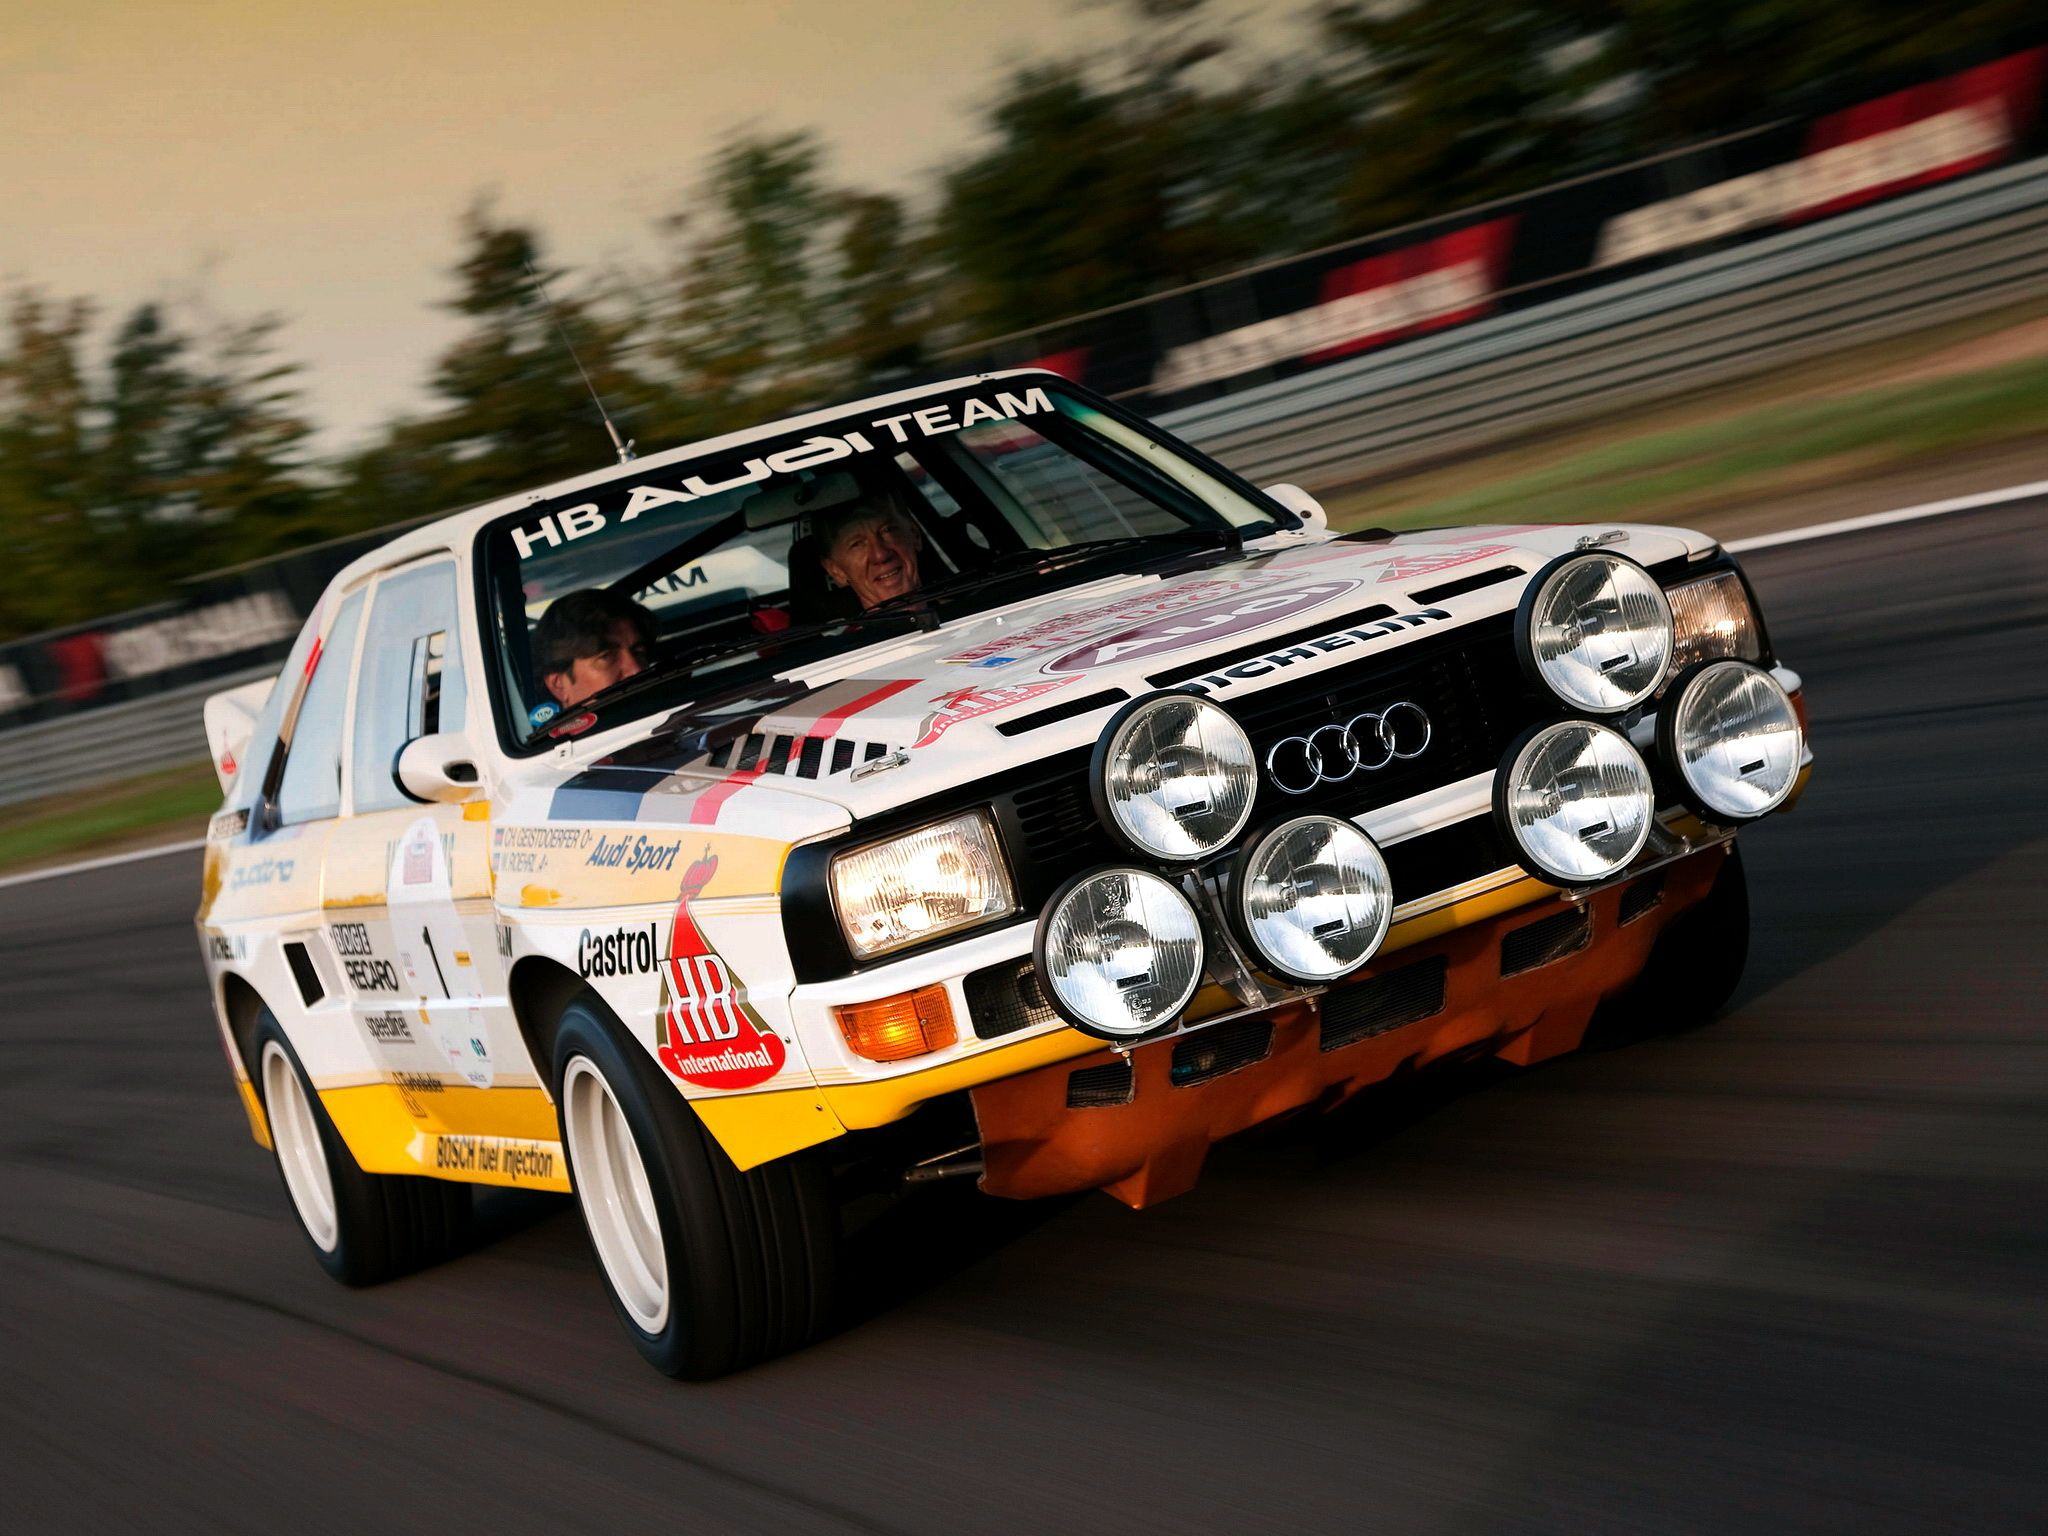 1985 86 audi sport quattro group b rally car cars of all. Black Bedroom Furniture Sets. Home Design Ideas